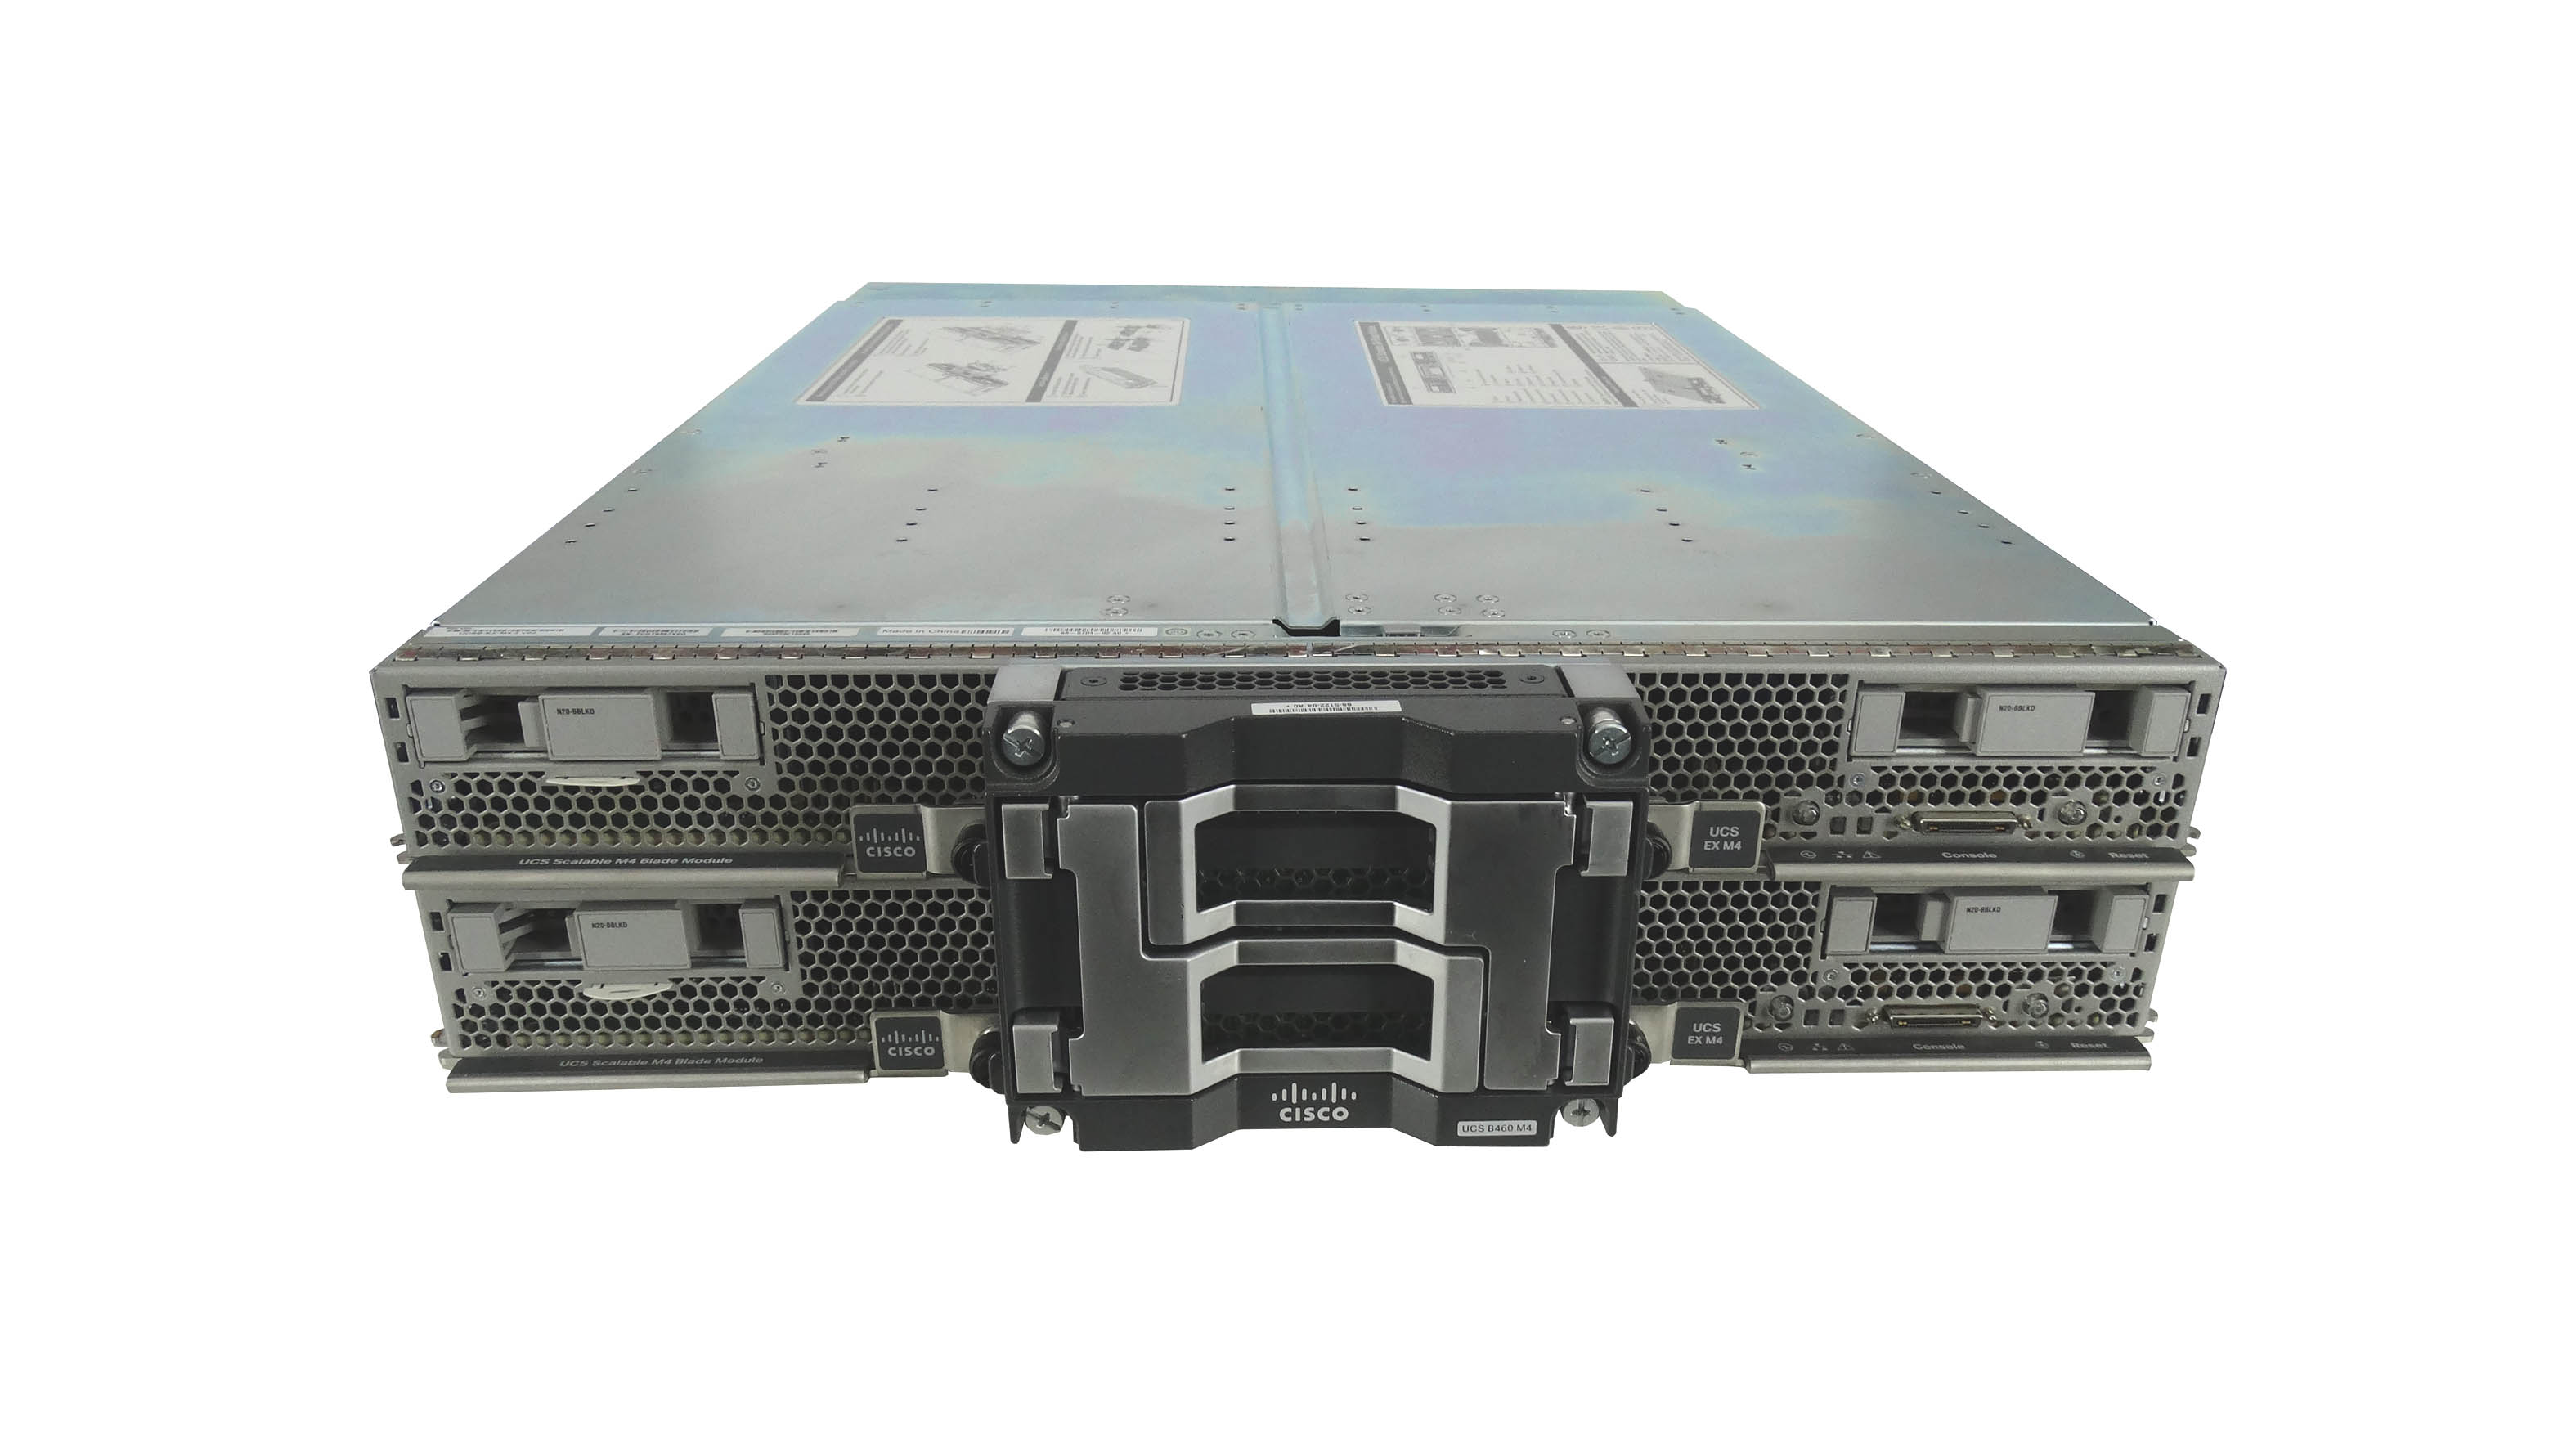 Cisco UCS 5108 Chassis with 2x B460 M4 Blade Server